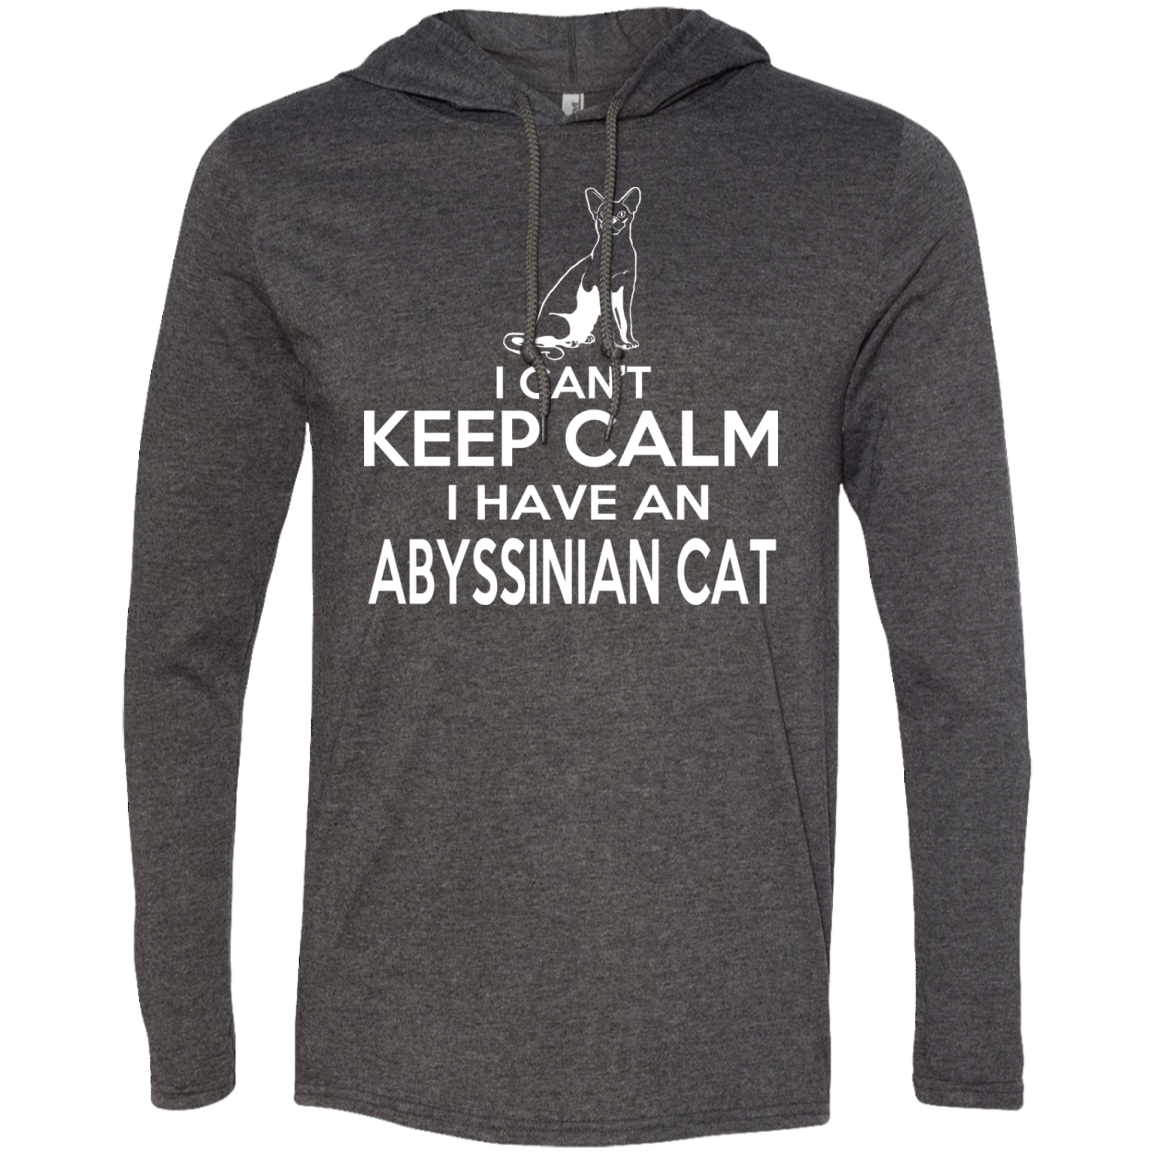 I Cant Keep Calm I Have An Abyssinian Cat Tee Shirt Hoodies